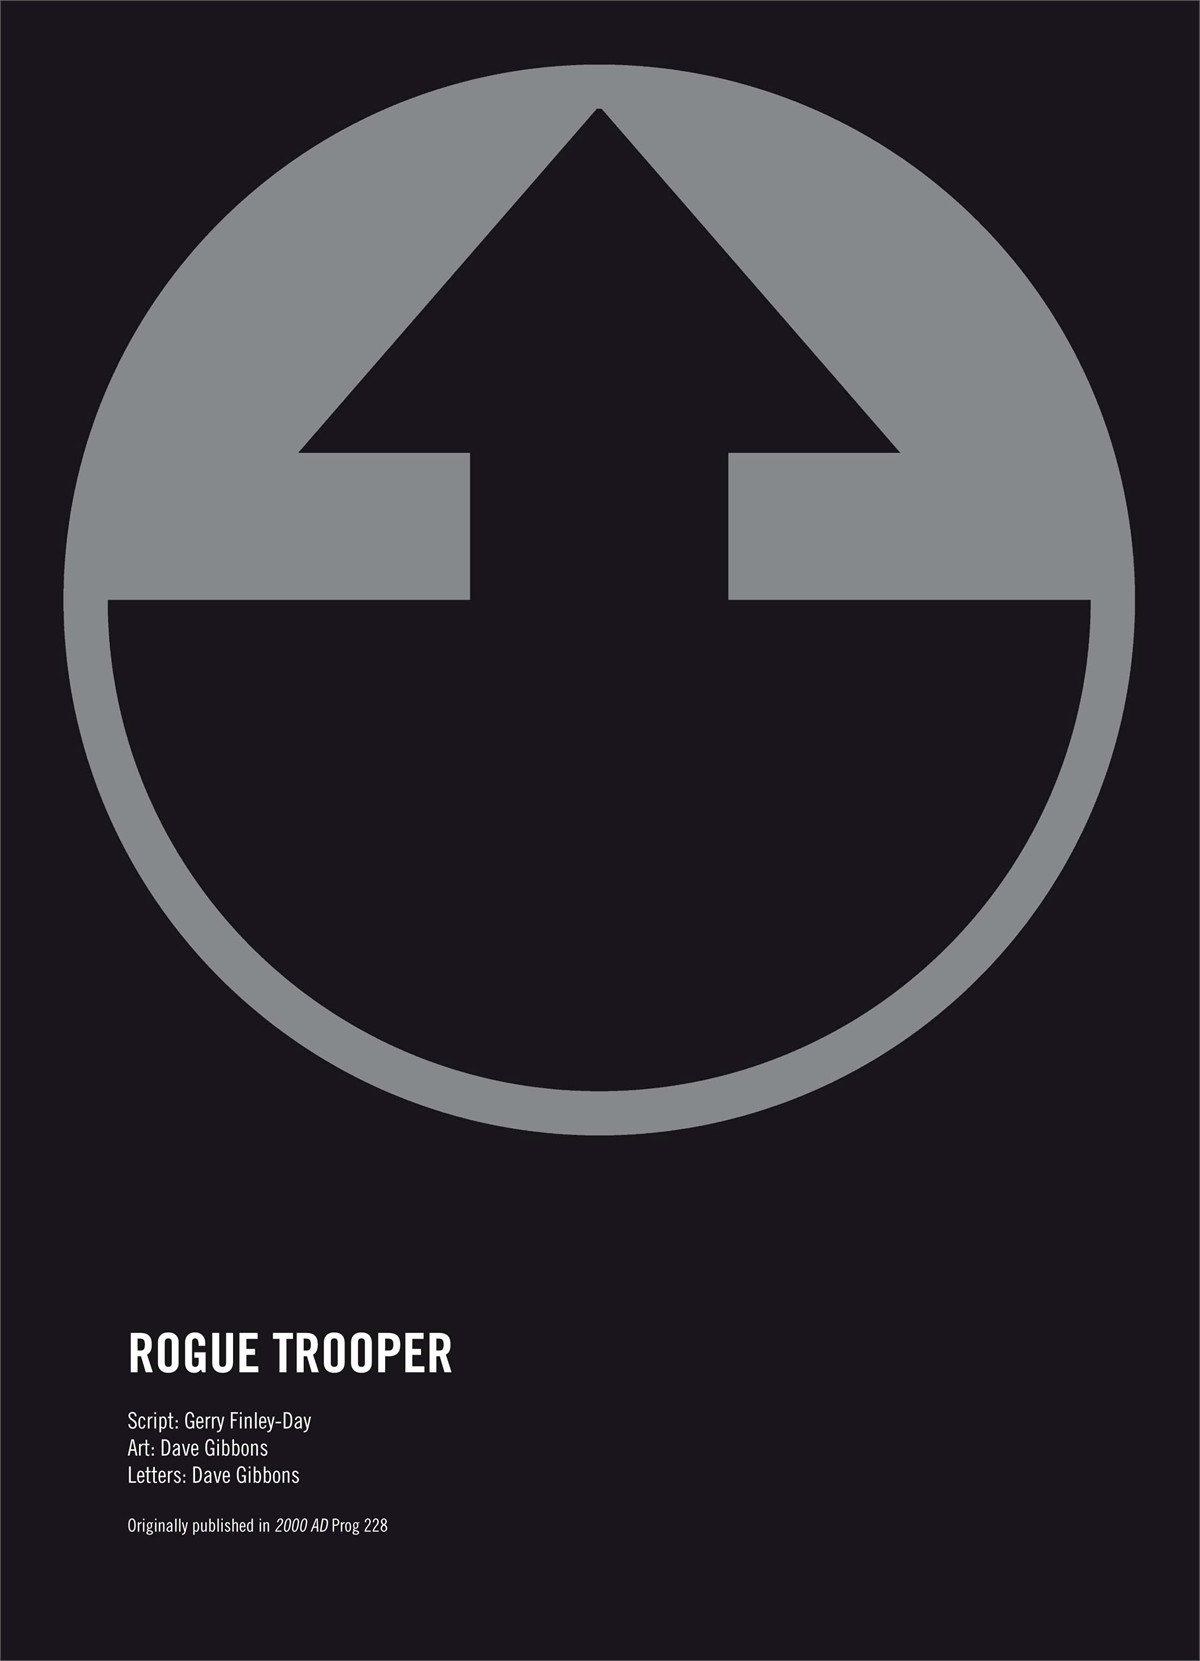 Rogue trooper tales of nu earth 1 9781907992704.in01